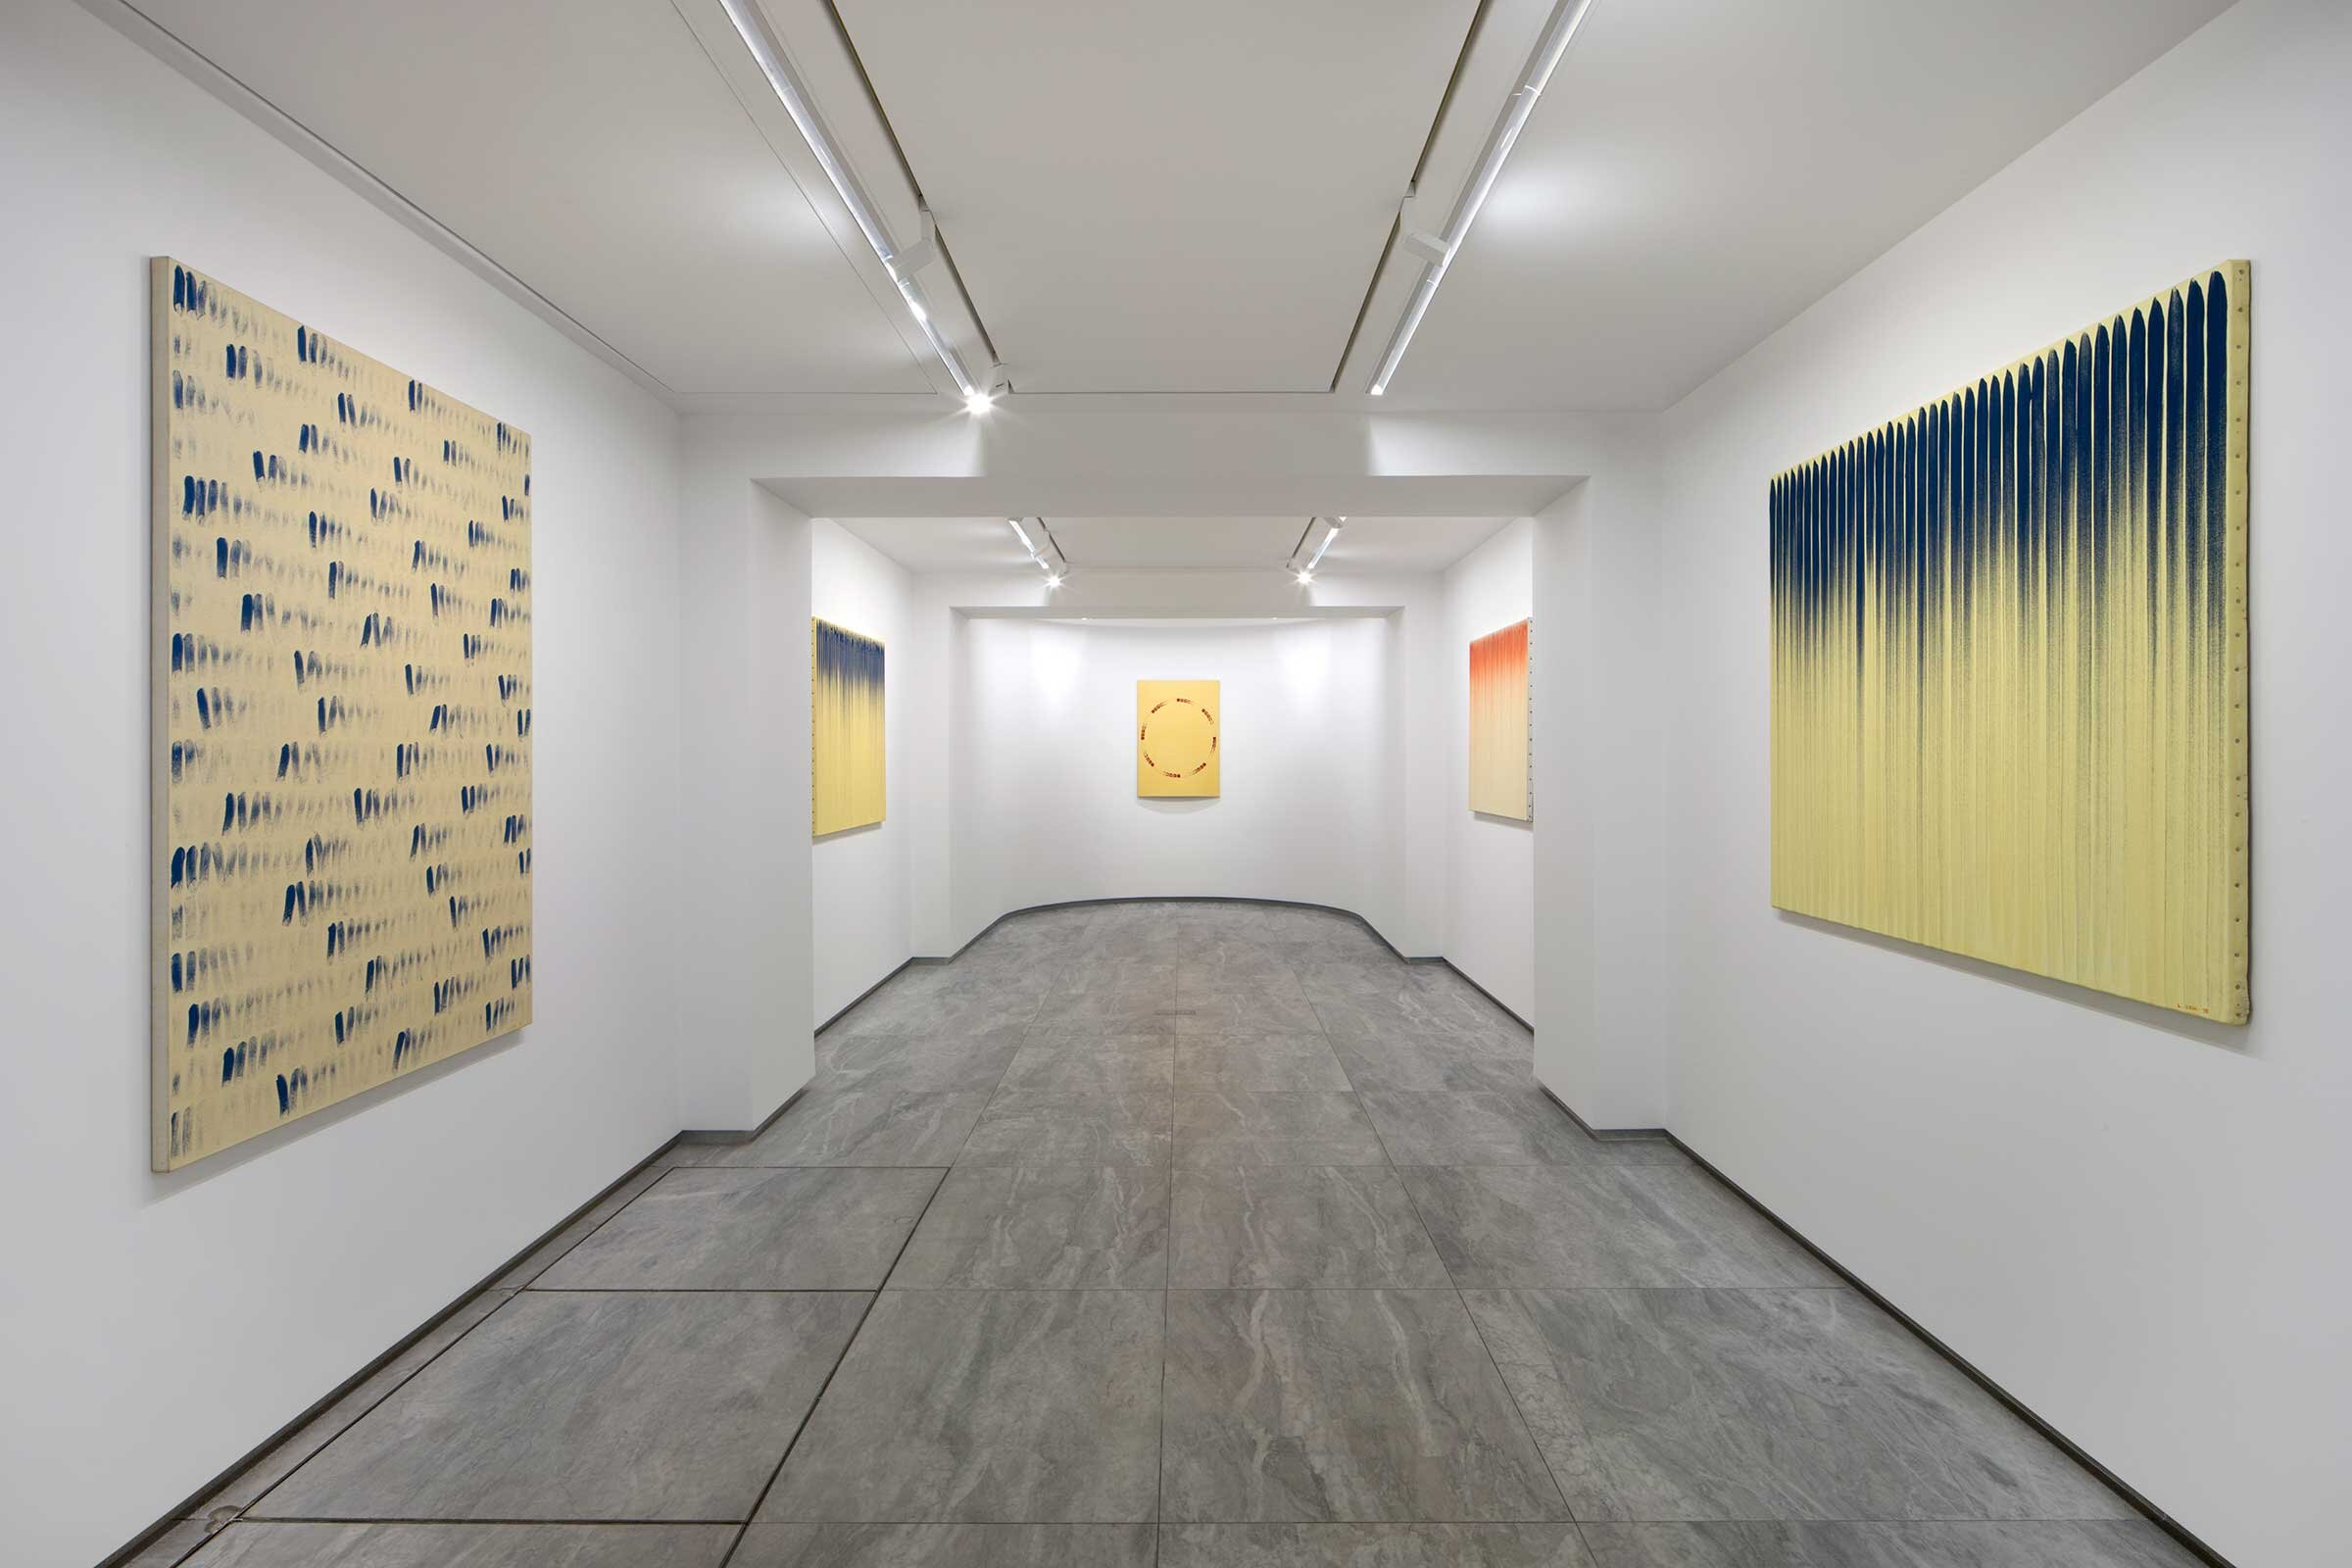 Installation view of 'From Point, From Line: 1976 - 1982' at kamel mennour, avenue Matignon, Paris